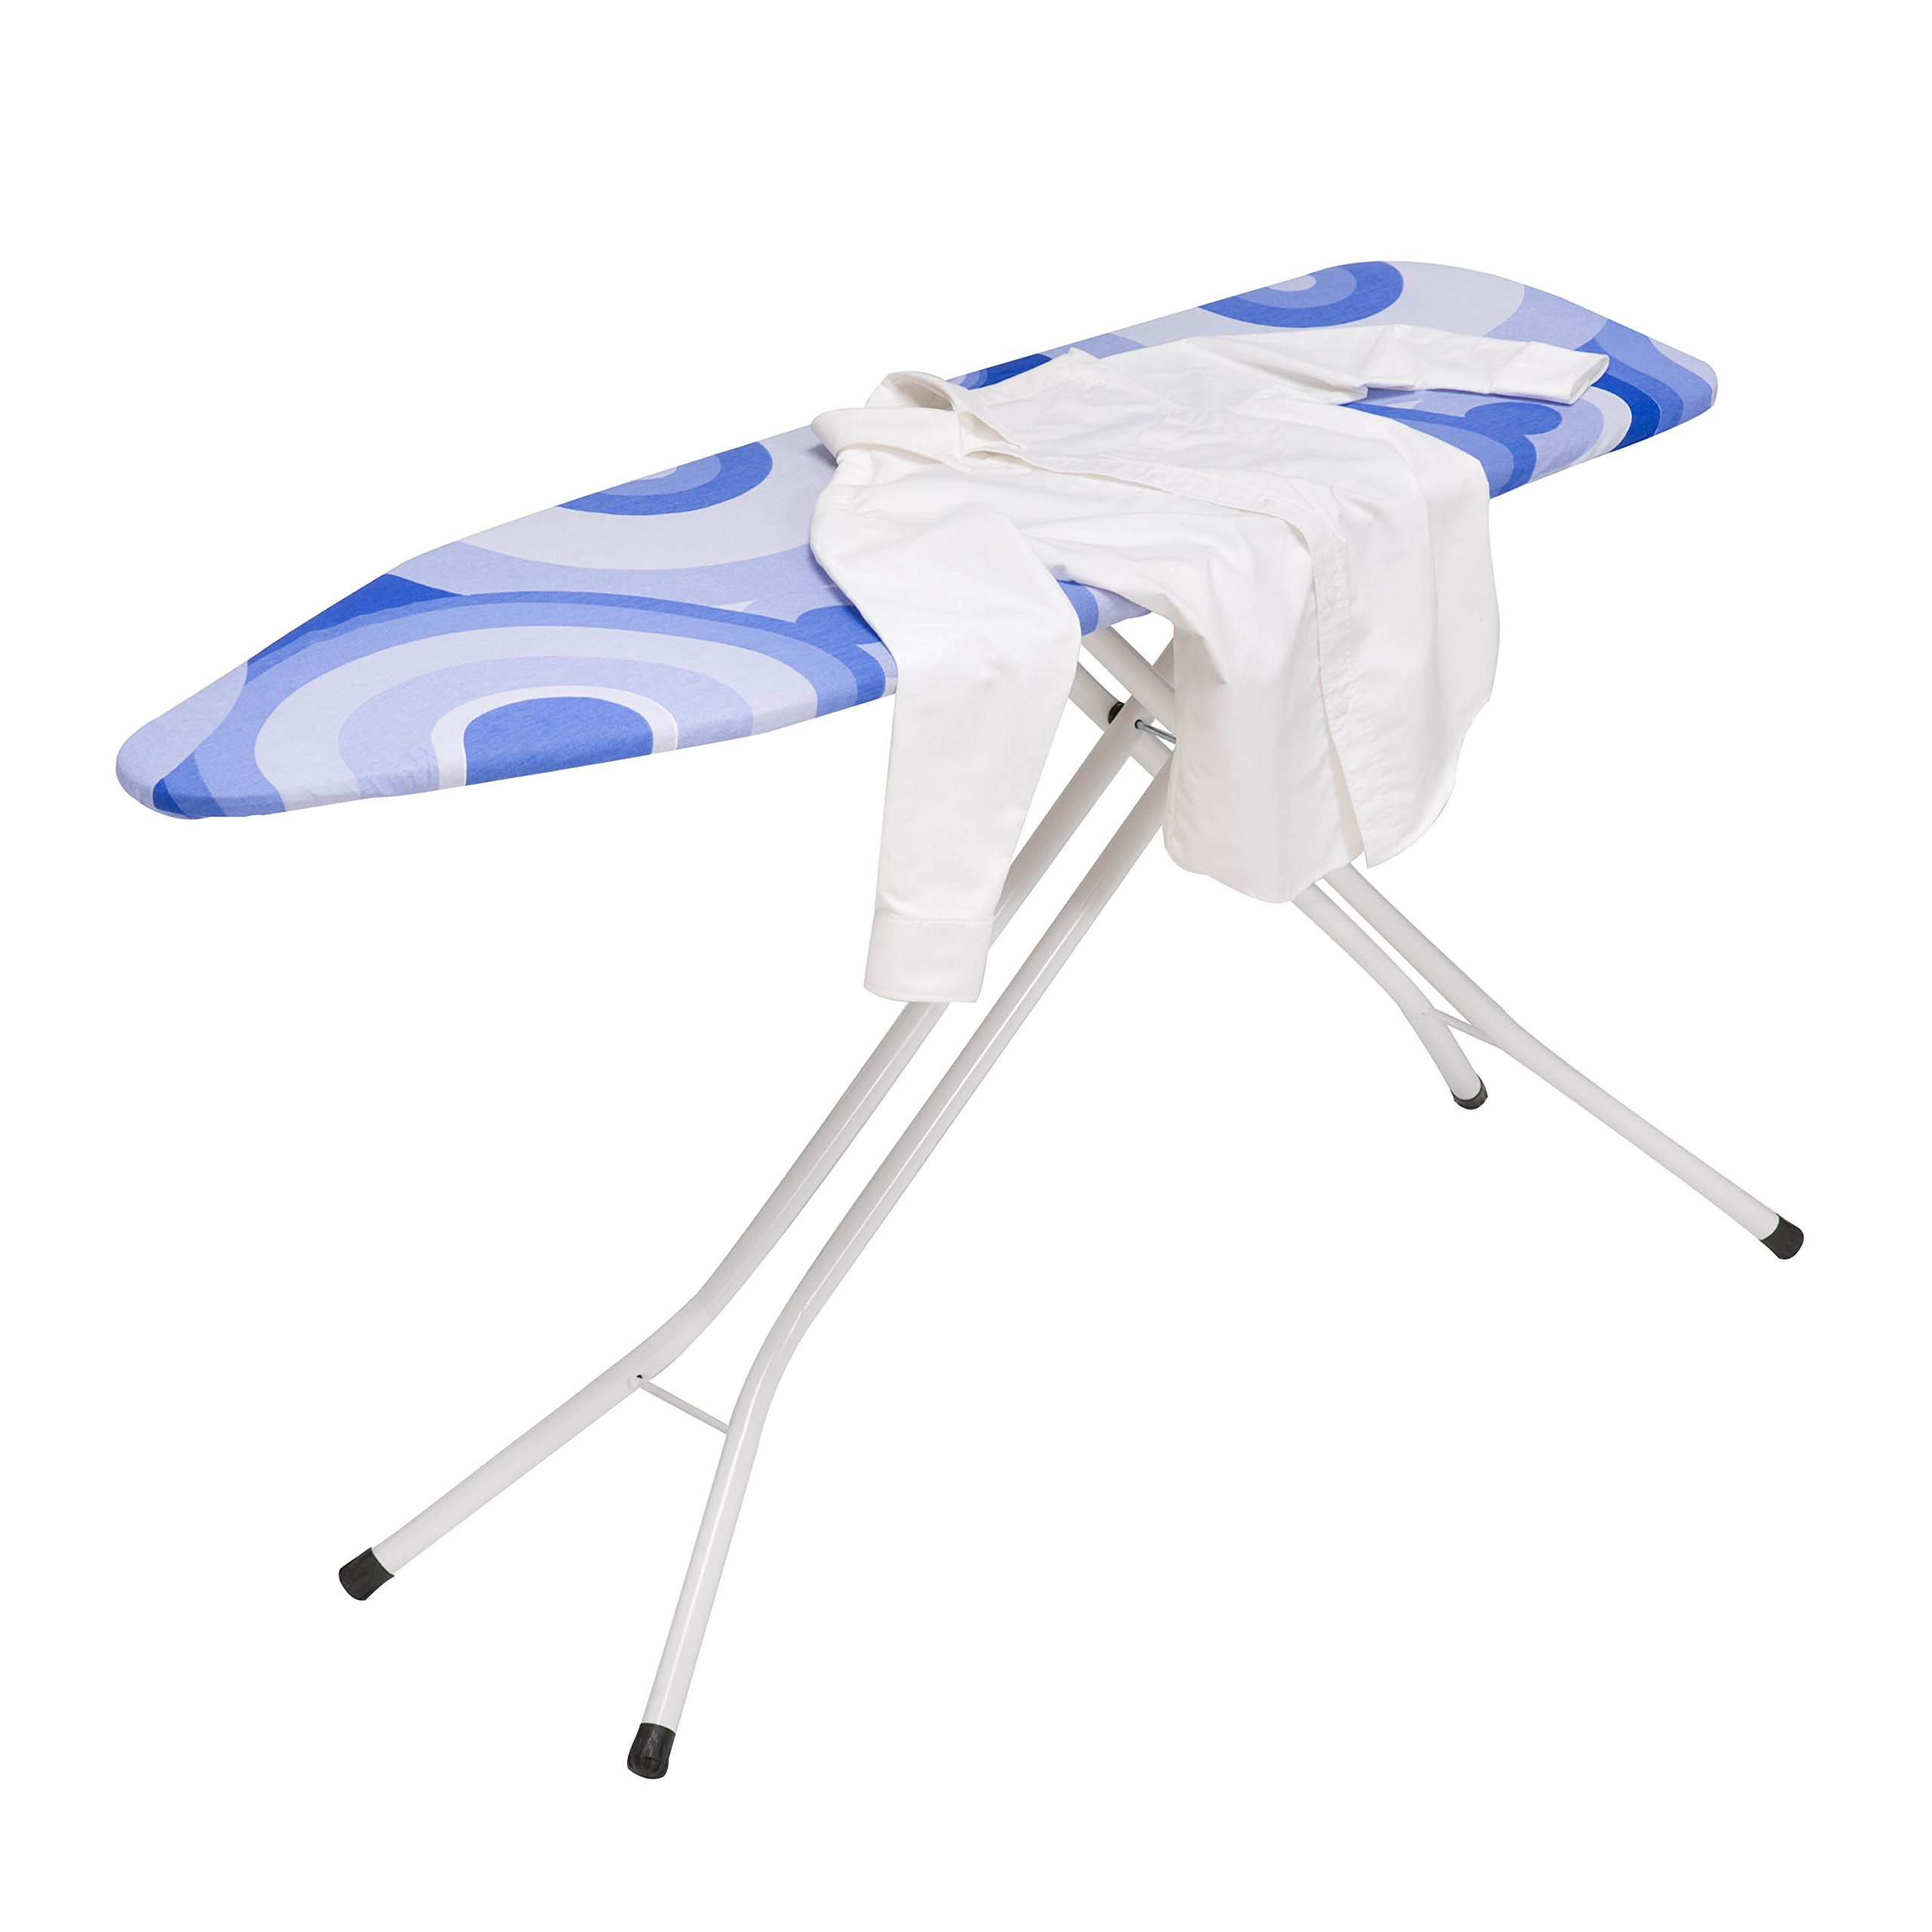 Honey-Can-Do Steel Adjustable Ironing Board with Four Legs